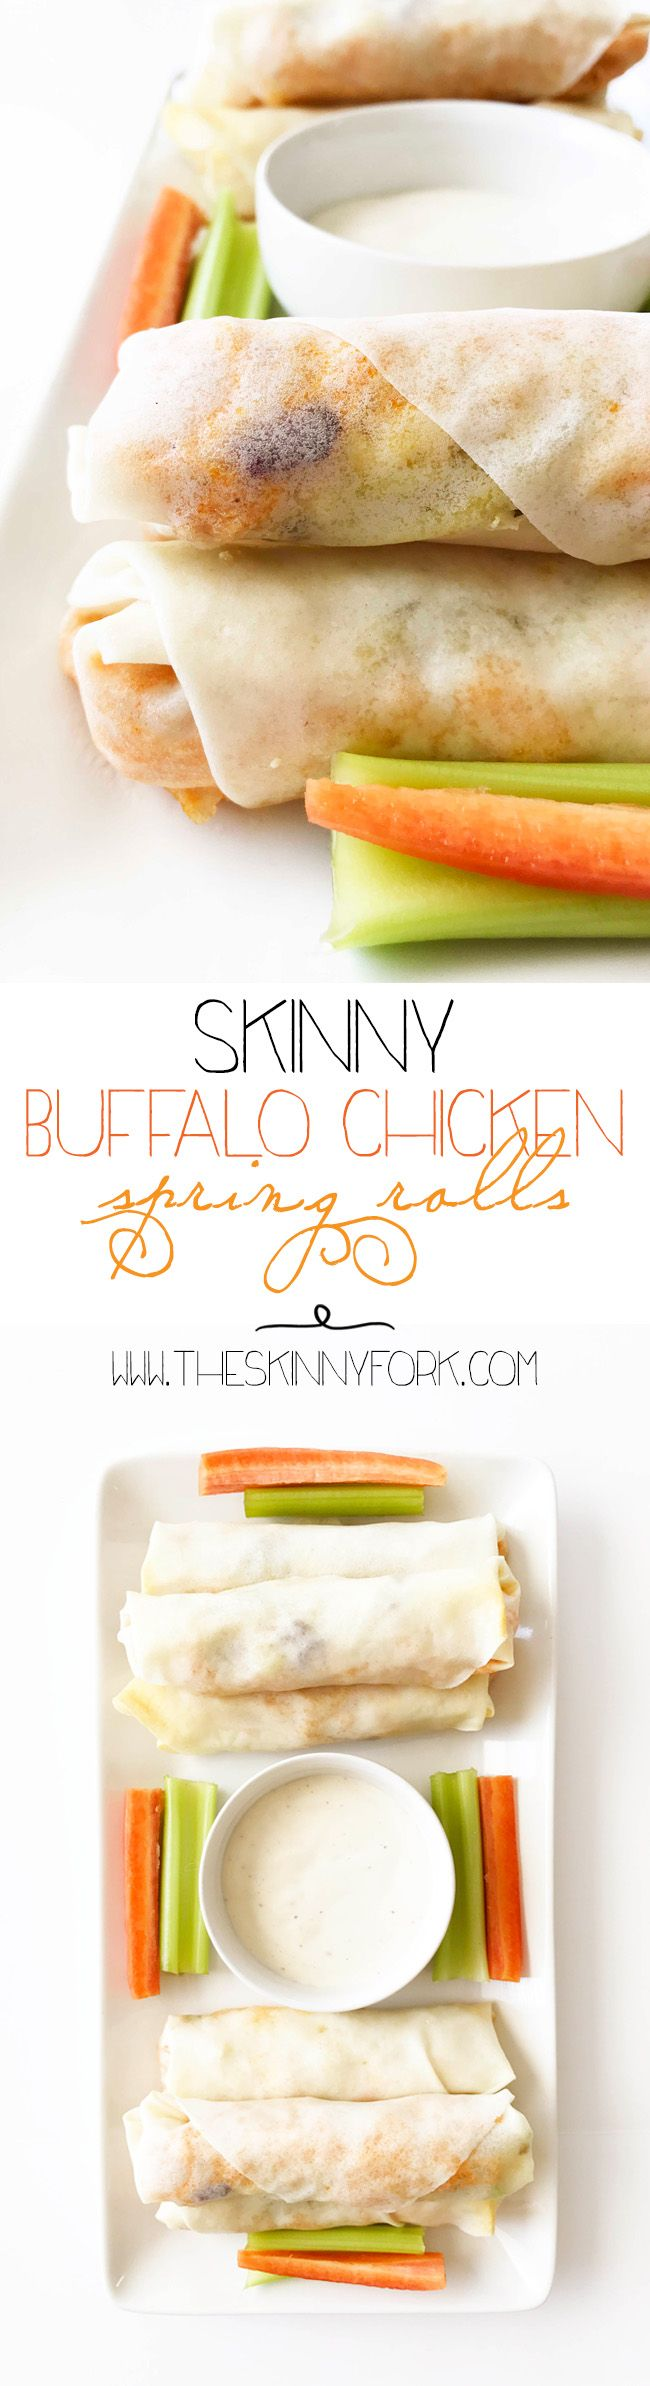 These Skinny Buffalo Chicken Spring Rolls are spiced shredded buffalo chicken, slaw, and blue cheese all wrapped up and baked in a spring roll wrapper. Perfect for dipping and dunking in ranch or blue cheese. TheSkinnyFork.com | Skinny & Healthy Recipes